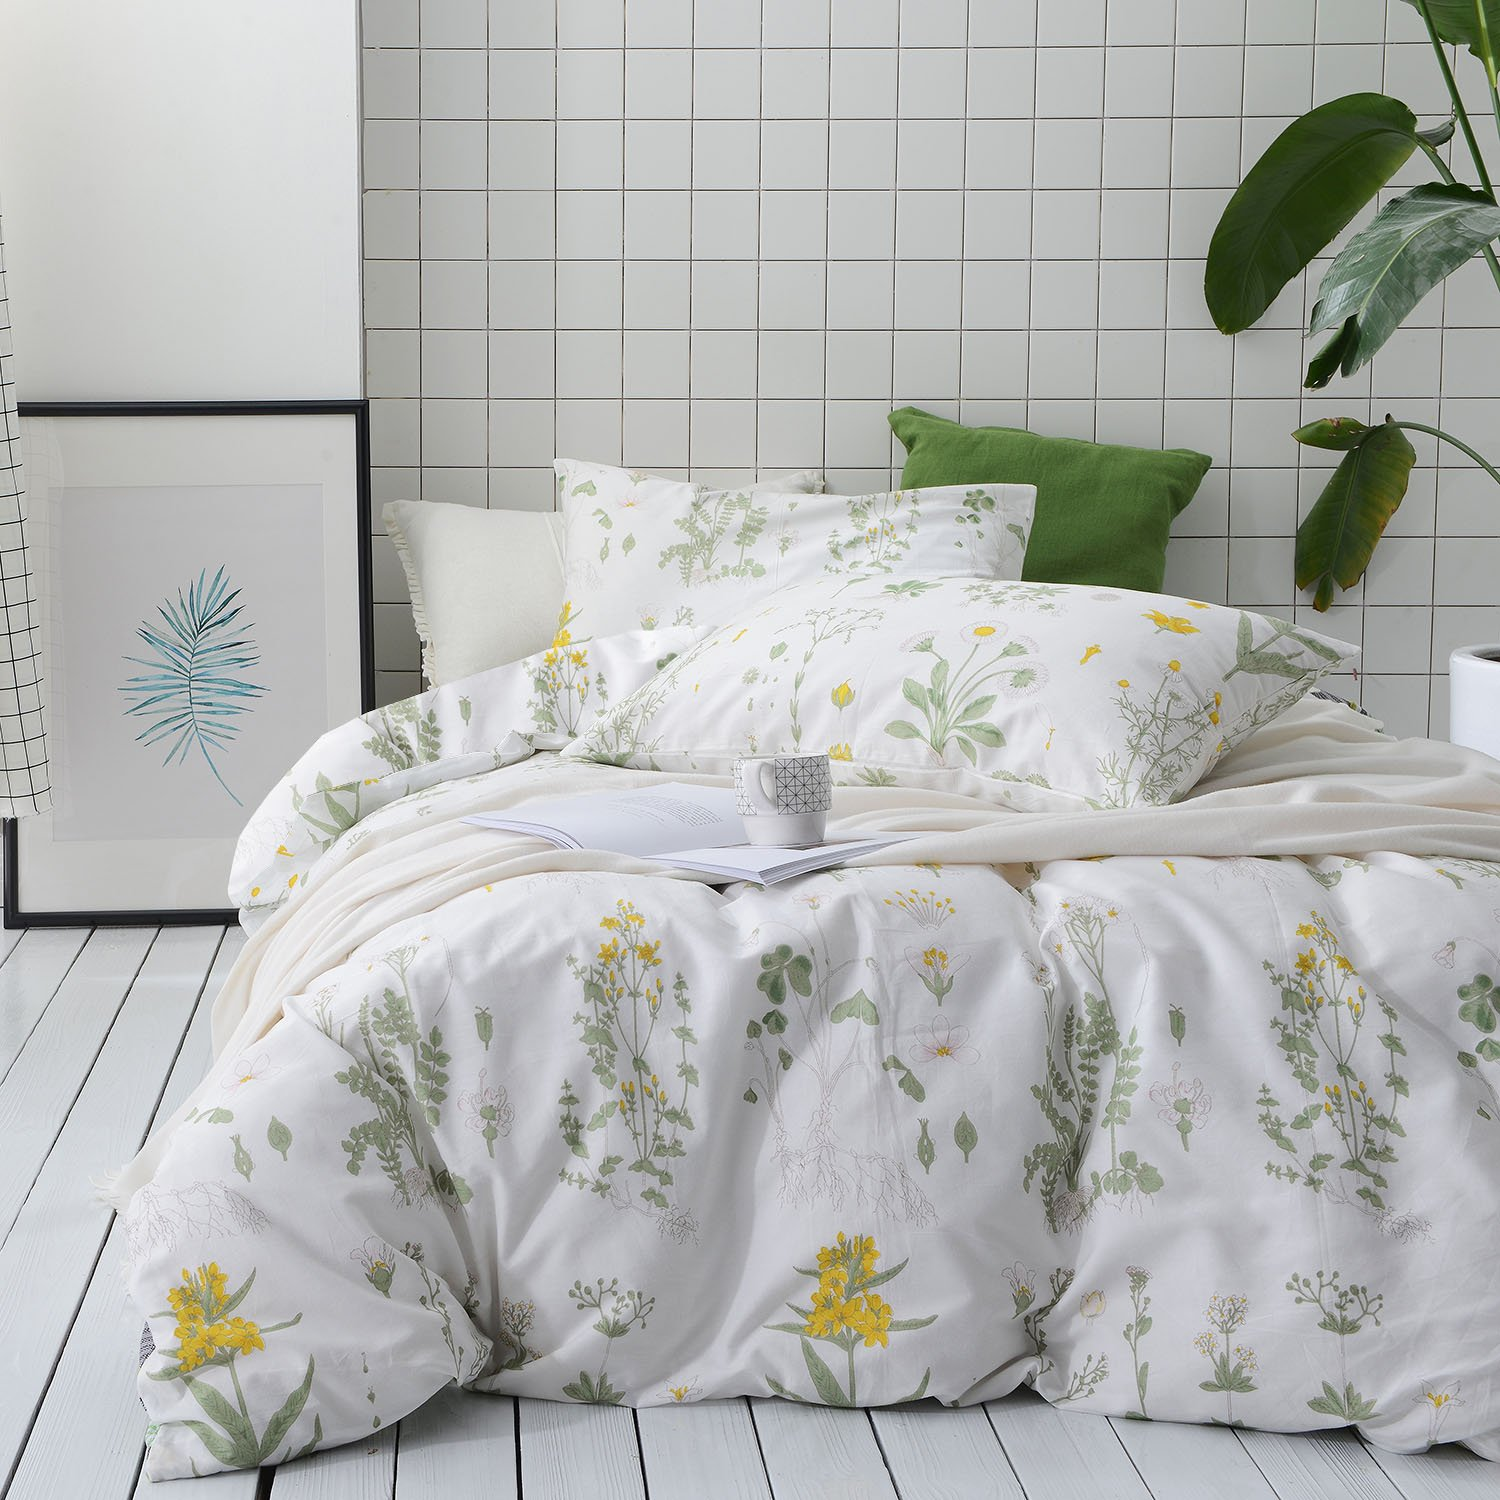 Wake In Cloud - Botanical Duvet Cover Set, 100% Cotton Bedding, Yellow Flowers and Green Leaves Floral Garden Pattern Printed on White (3pcs, Queen Size)